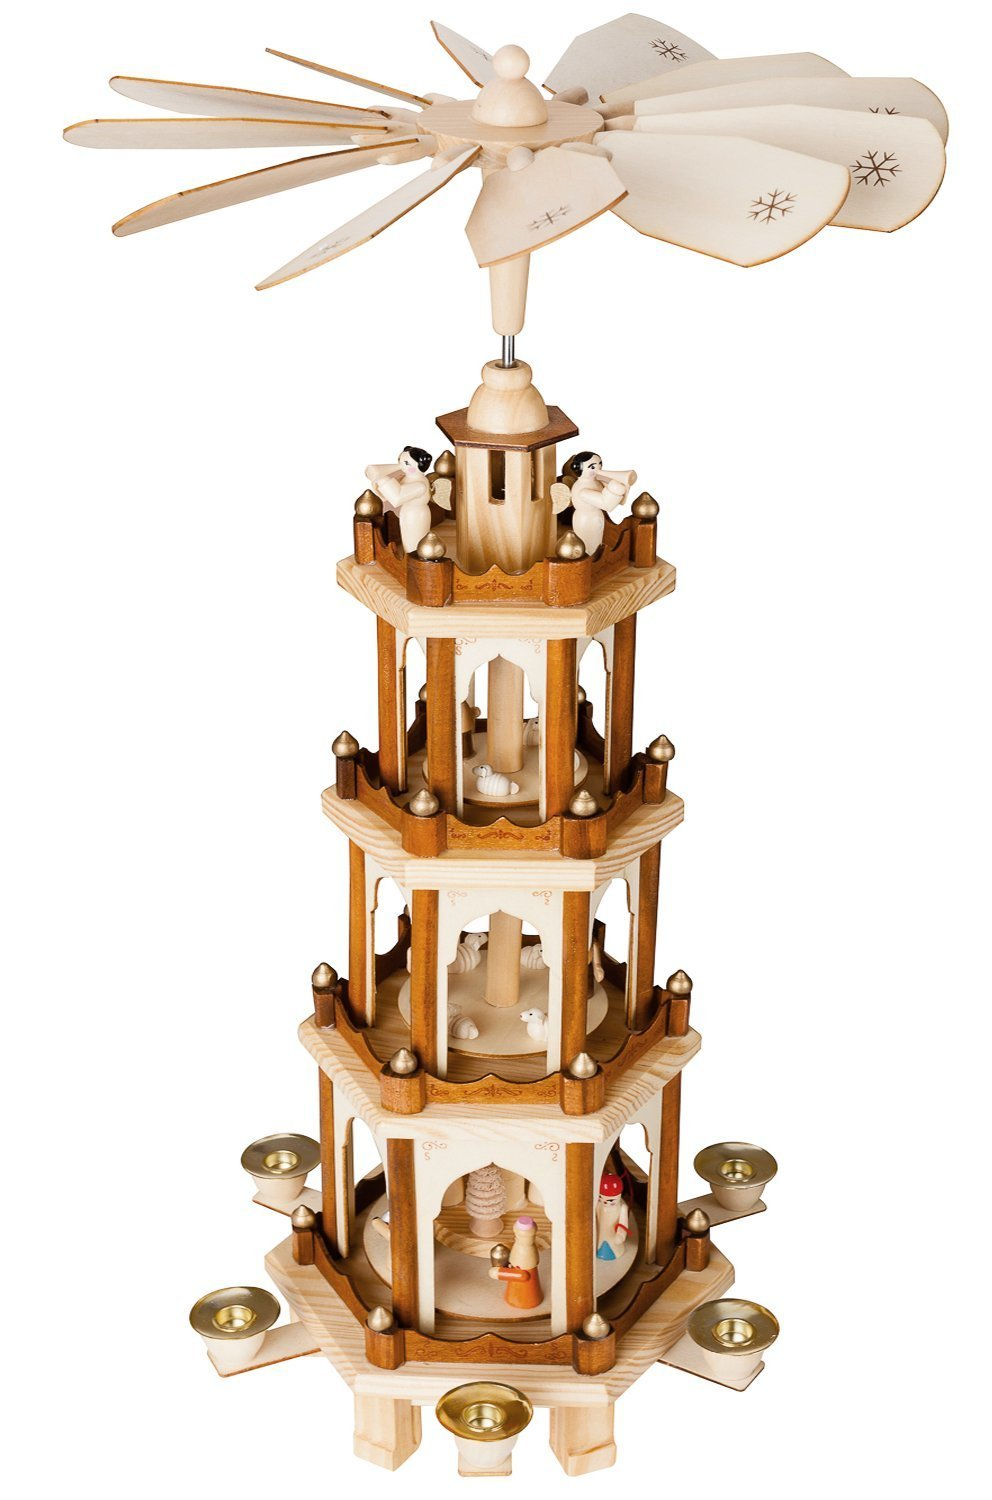 BRUBAKER Christmas Pyramid - 24 Inches - 4 Tier Carousel with 6 Candle Holder and Hand Painted Figurines - Designed in GERMANY - Nativity Set, Decoration by BRUBAKER (Image #8)